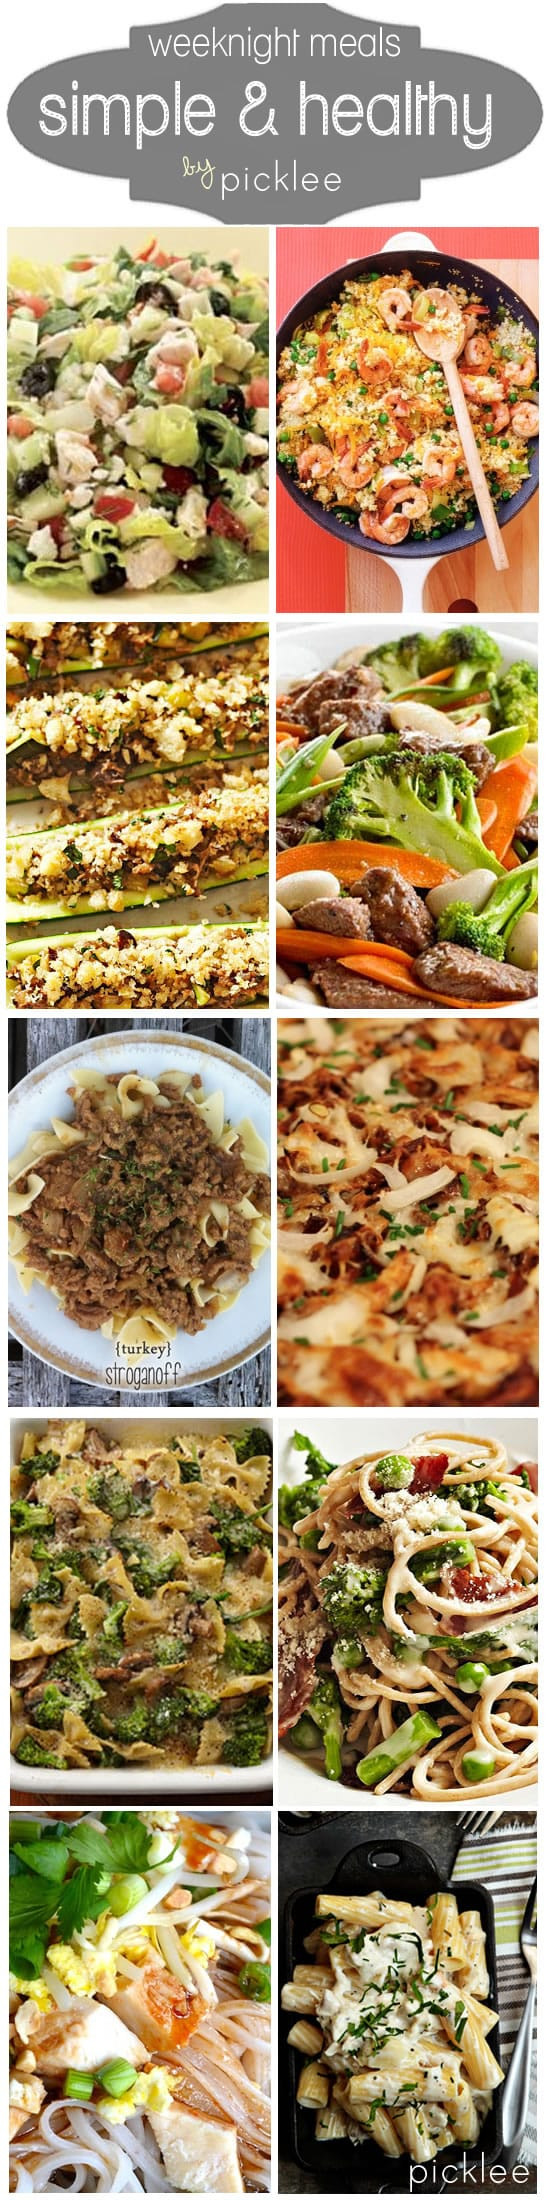 Simple And Healthy Dinners  10 Simple & Healthy Weeknight Dinners [recipes] Picklee